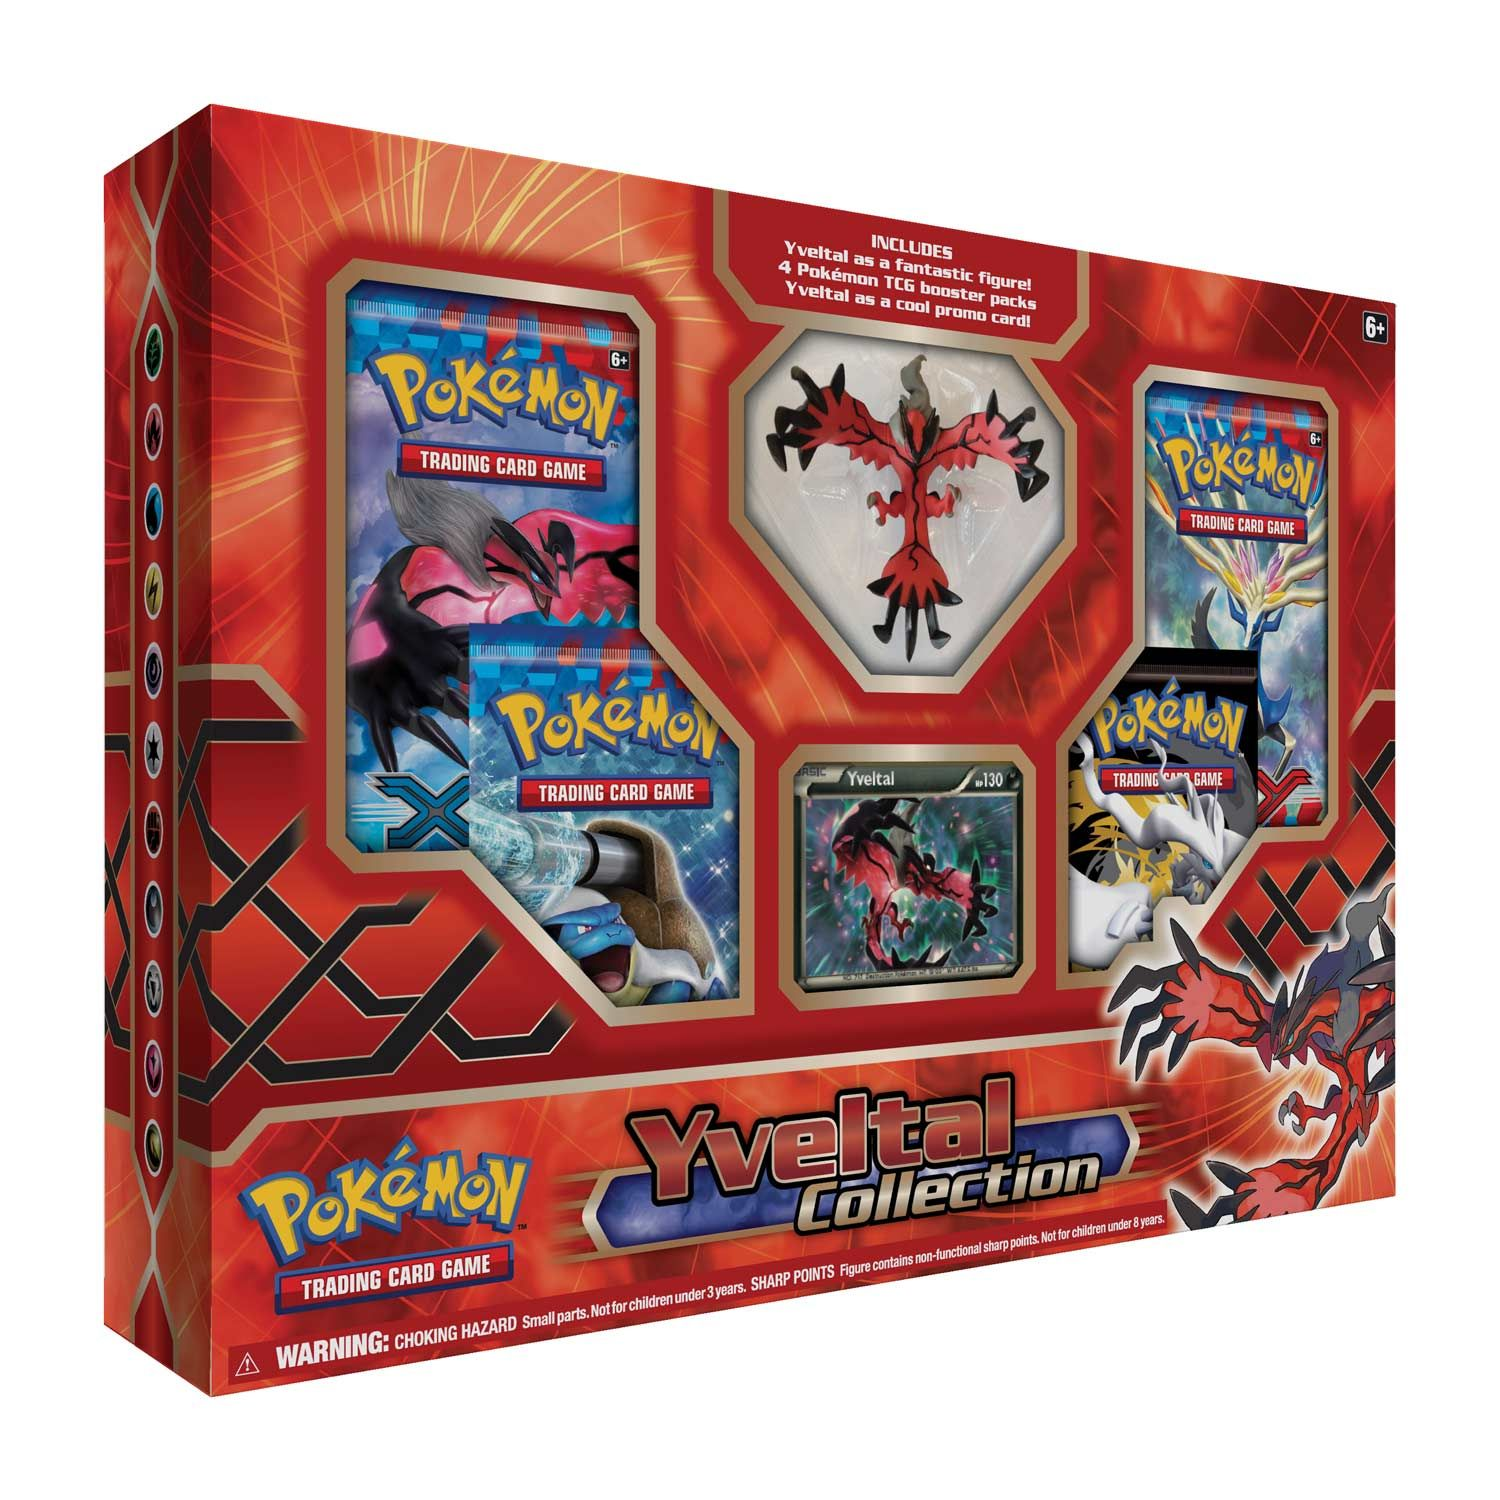 Roller skates tcg - Pok Mon Tcg Yveltal Collection Contains The Destruction Pok Mon Yveltal As A Fantastic Figure And As